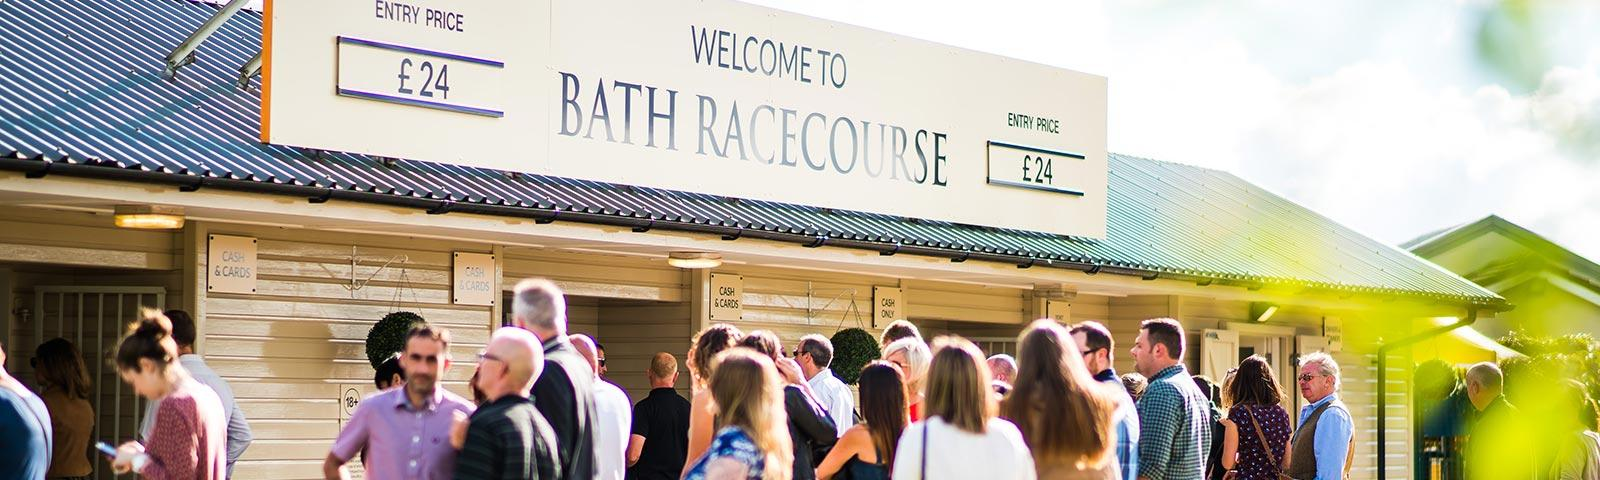 Main entrance to Bath Racecourse, with visitors lining up to get inside.